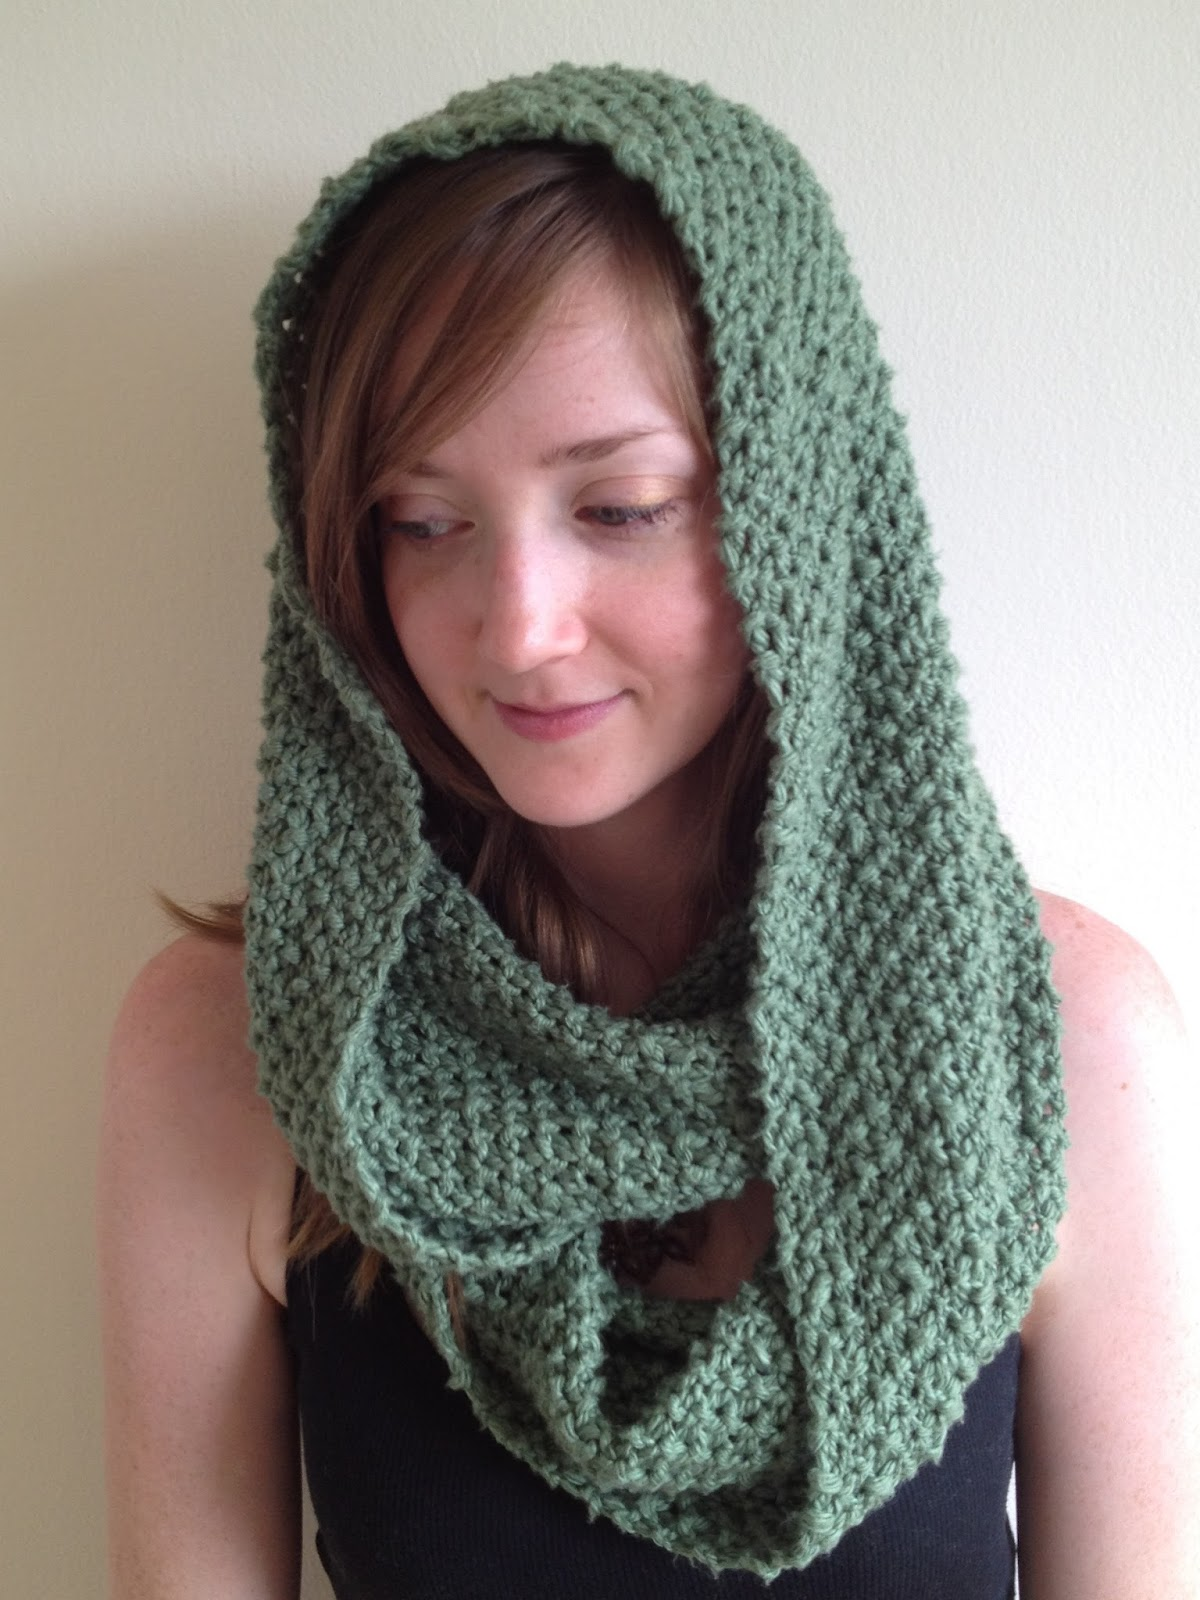 tinselmint: HOW TO WEAR AN INFINITY SCARF